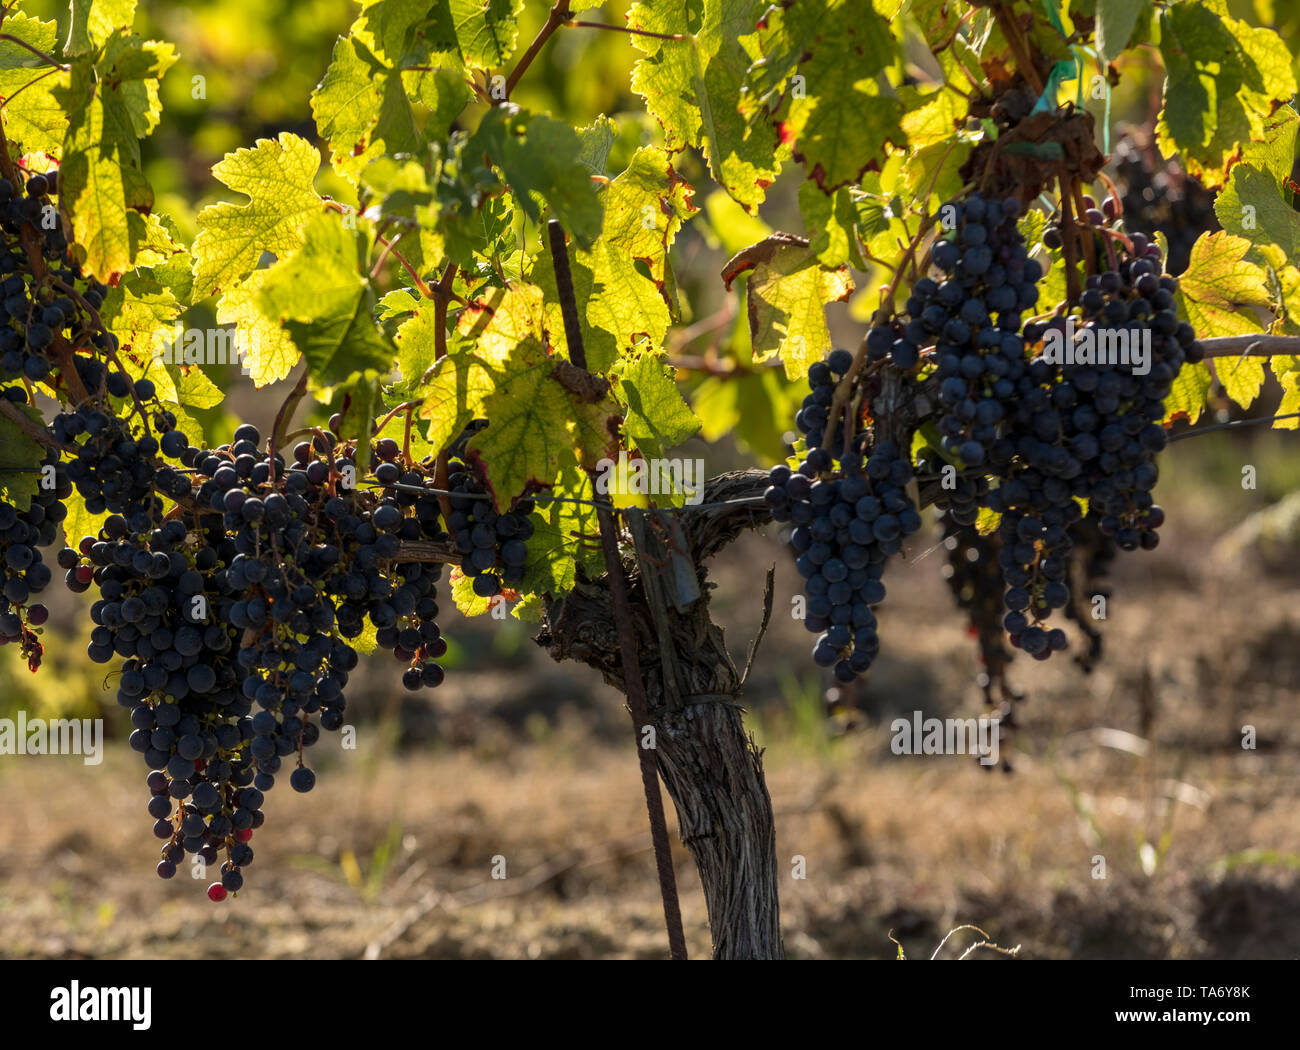 Red wine grapes ready to harvest and wine production. Medoc, France - Stock Image